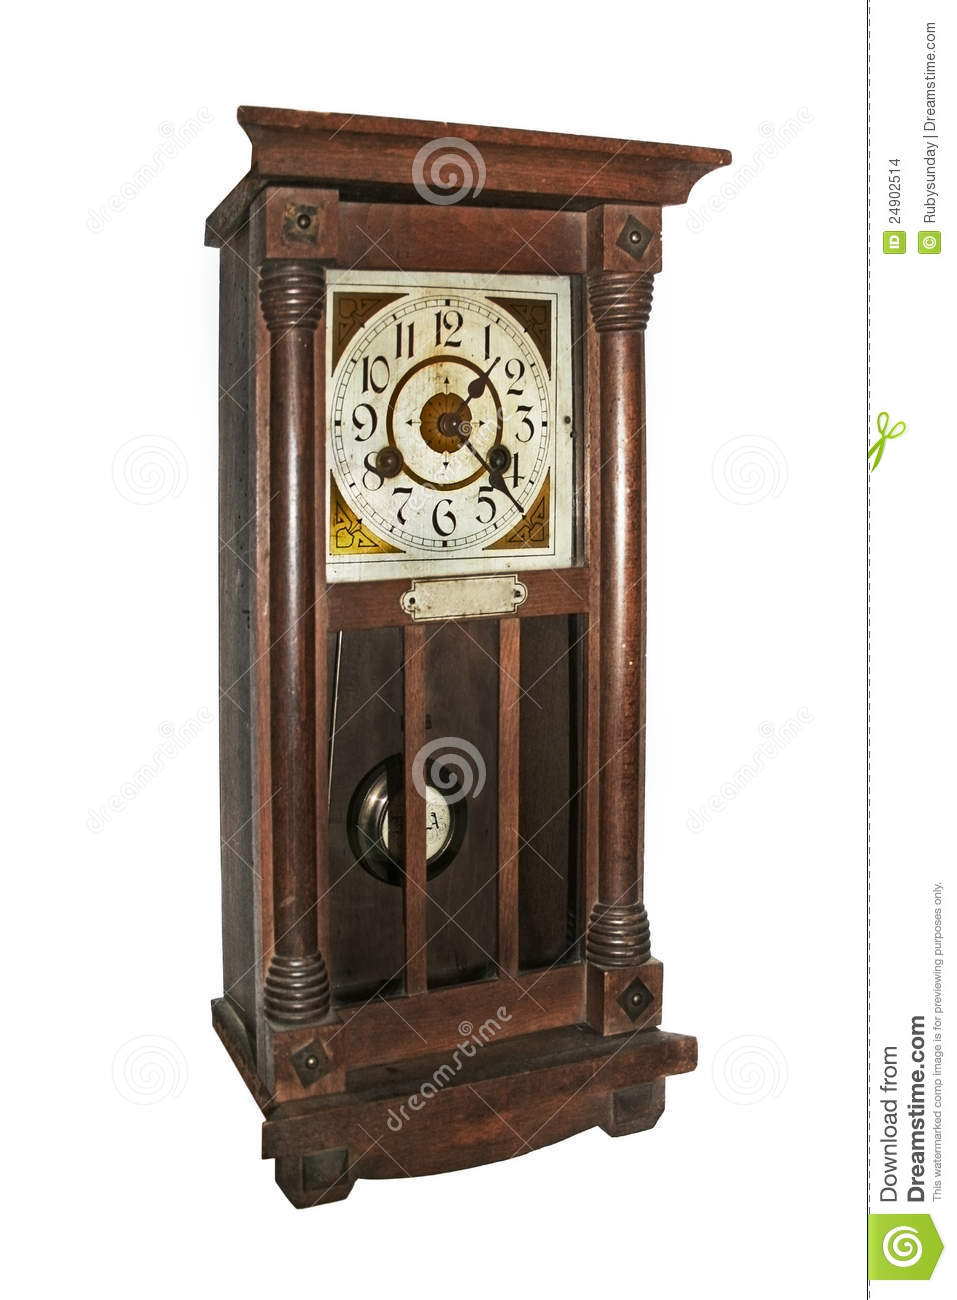 Antique Wall Clock Stock Images